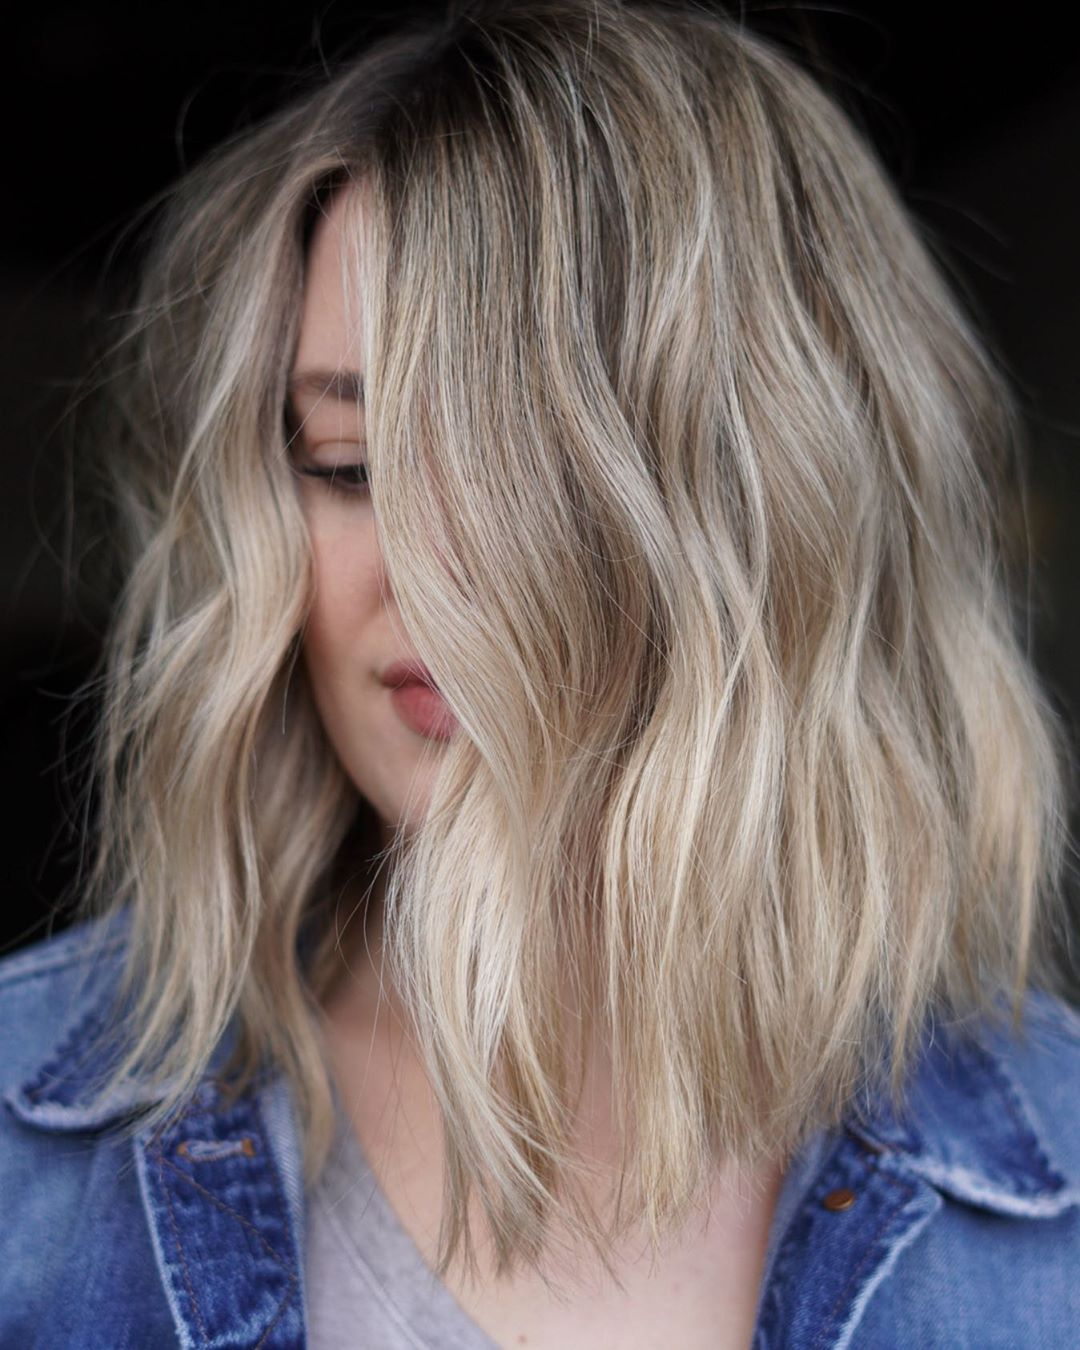 Short to Medium Hair with Blonde and Silver Highlights